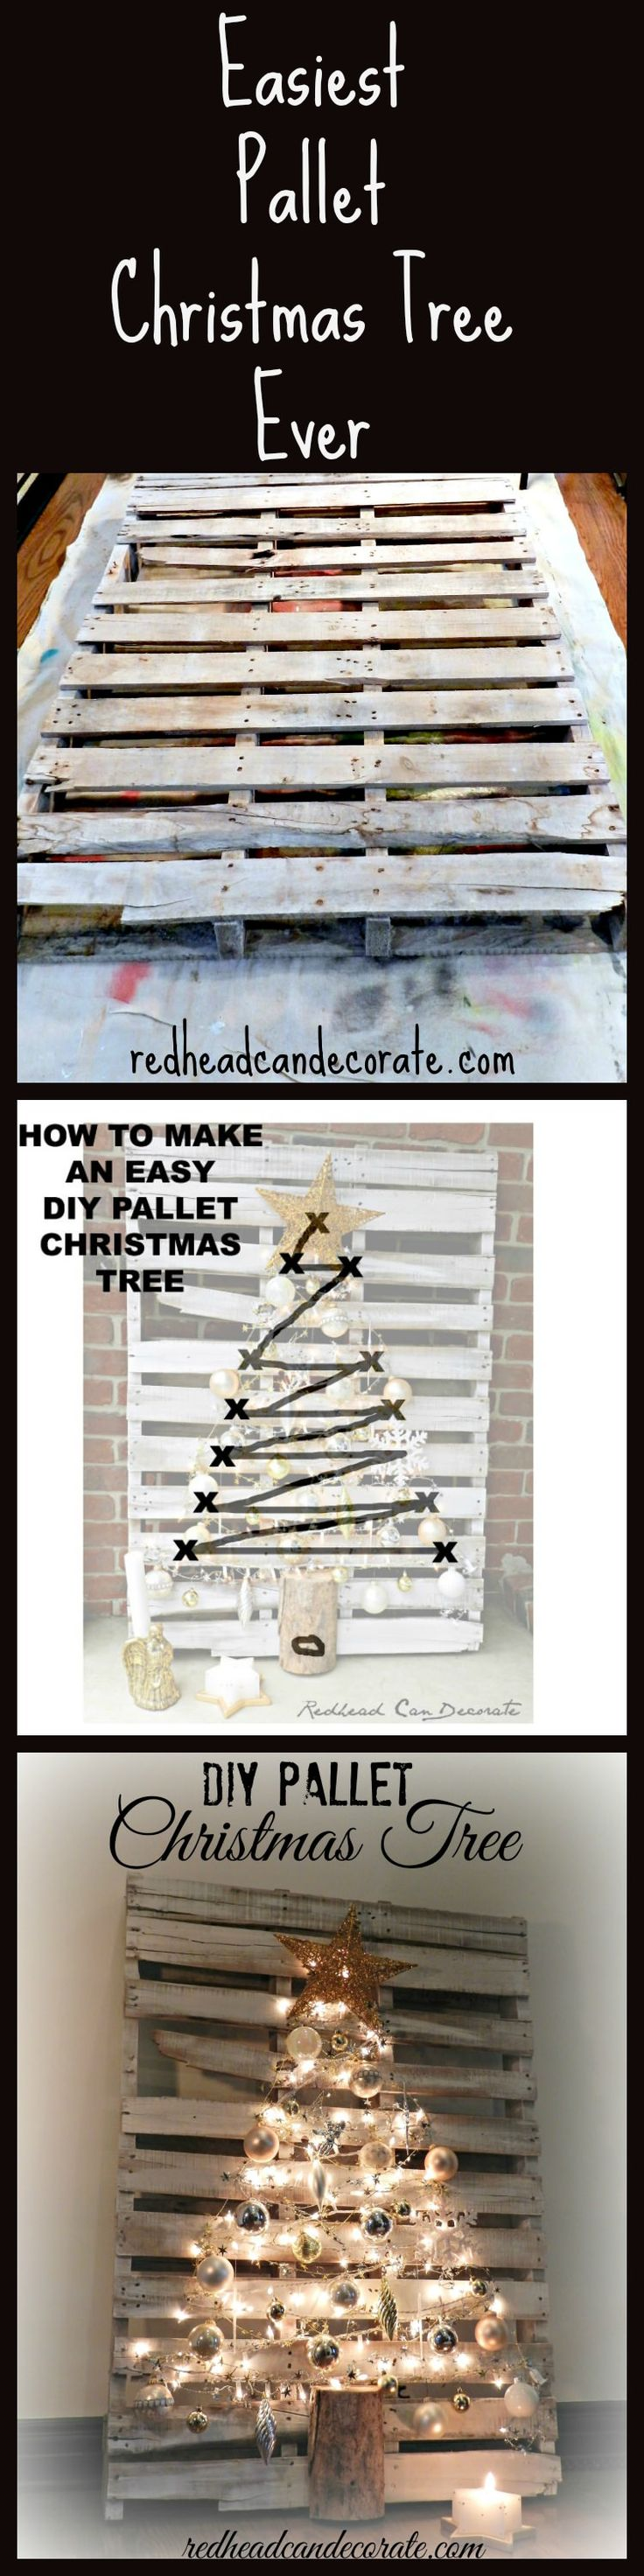 Easiest Pallet Christmas Tree Tutorial…I did this in one night, and it cost me under $10. @redheadcandecorate.com